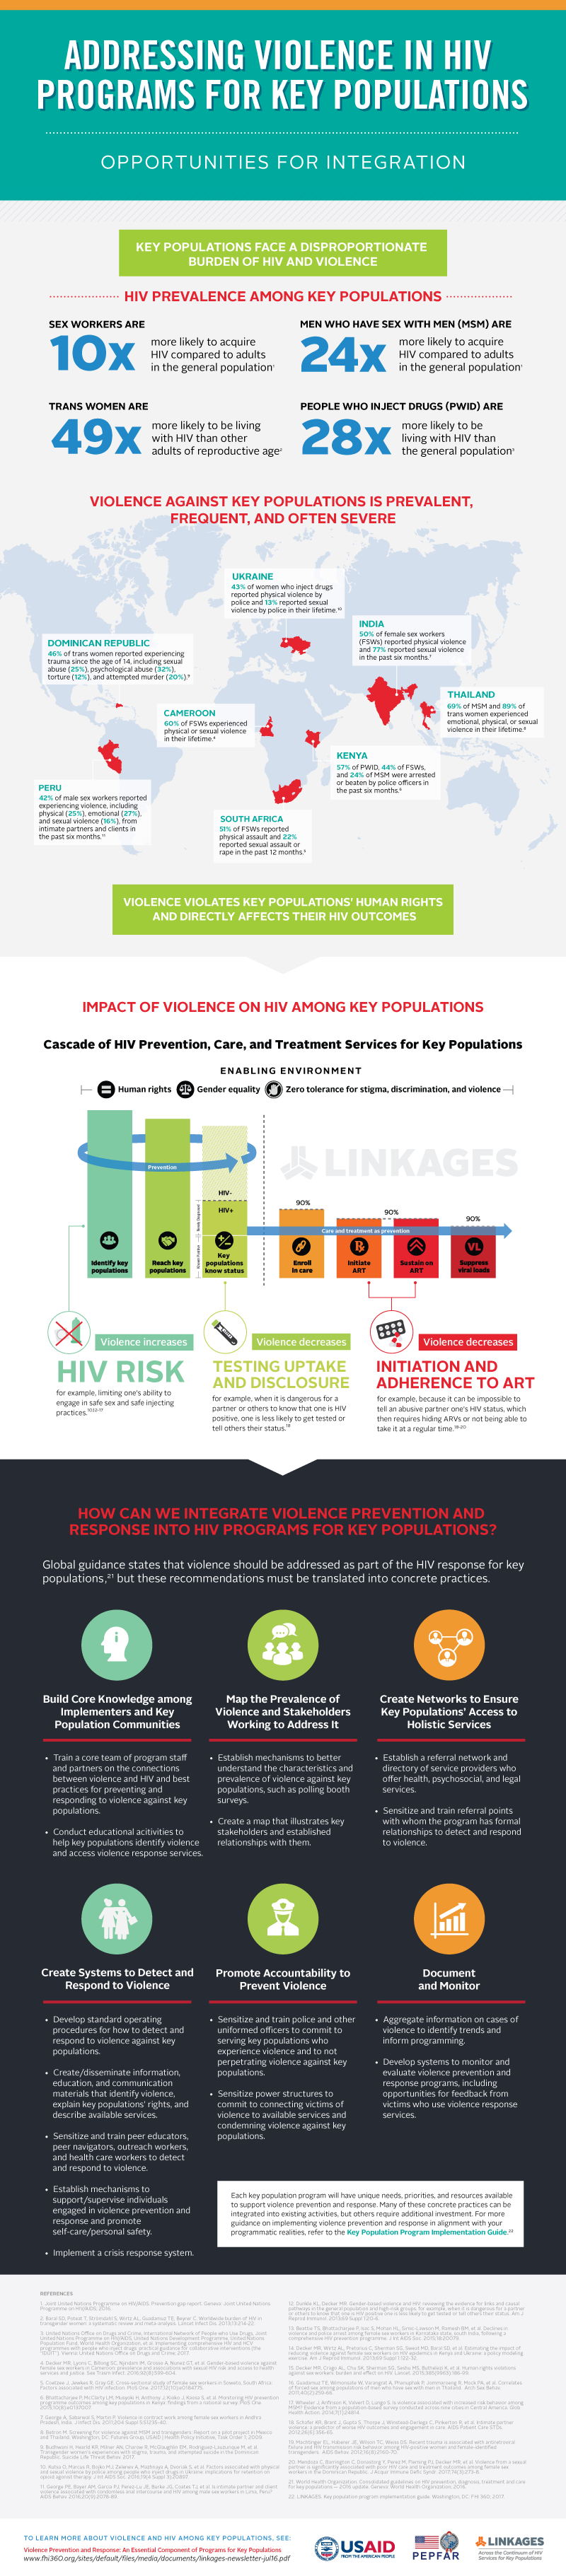 Violence-HIV-infographic-FINAL